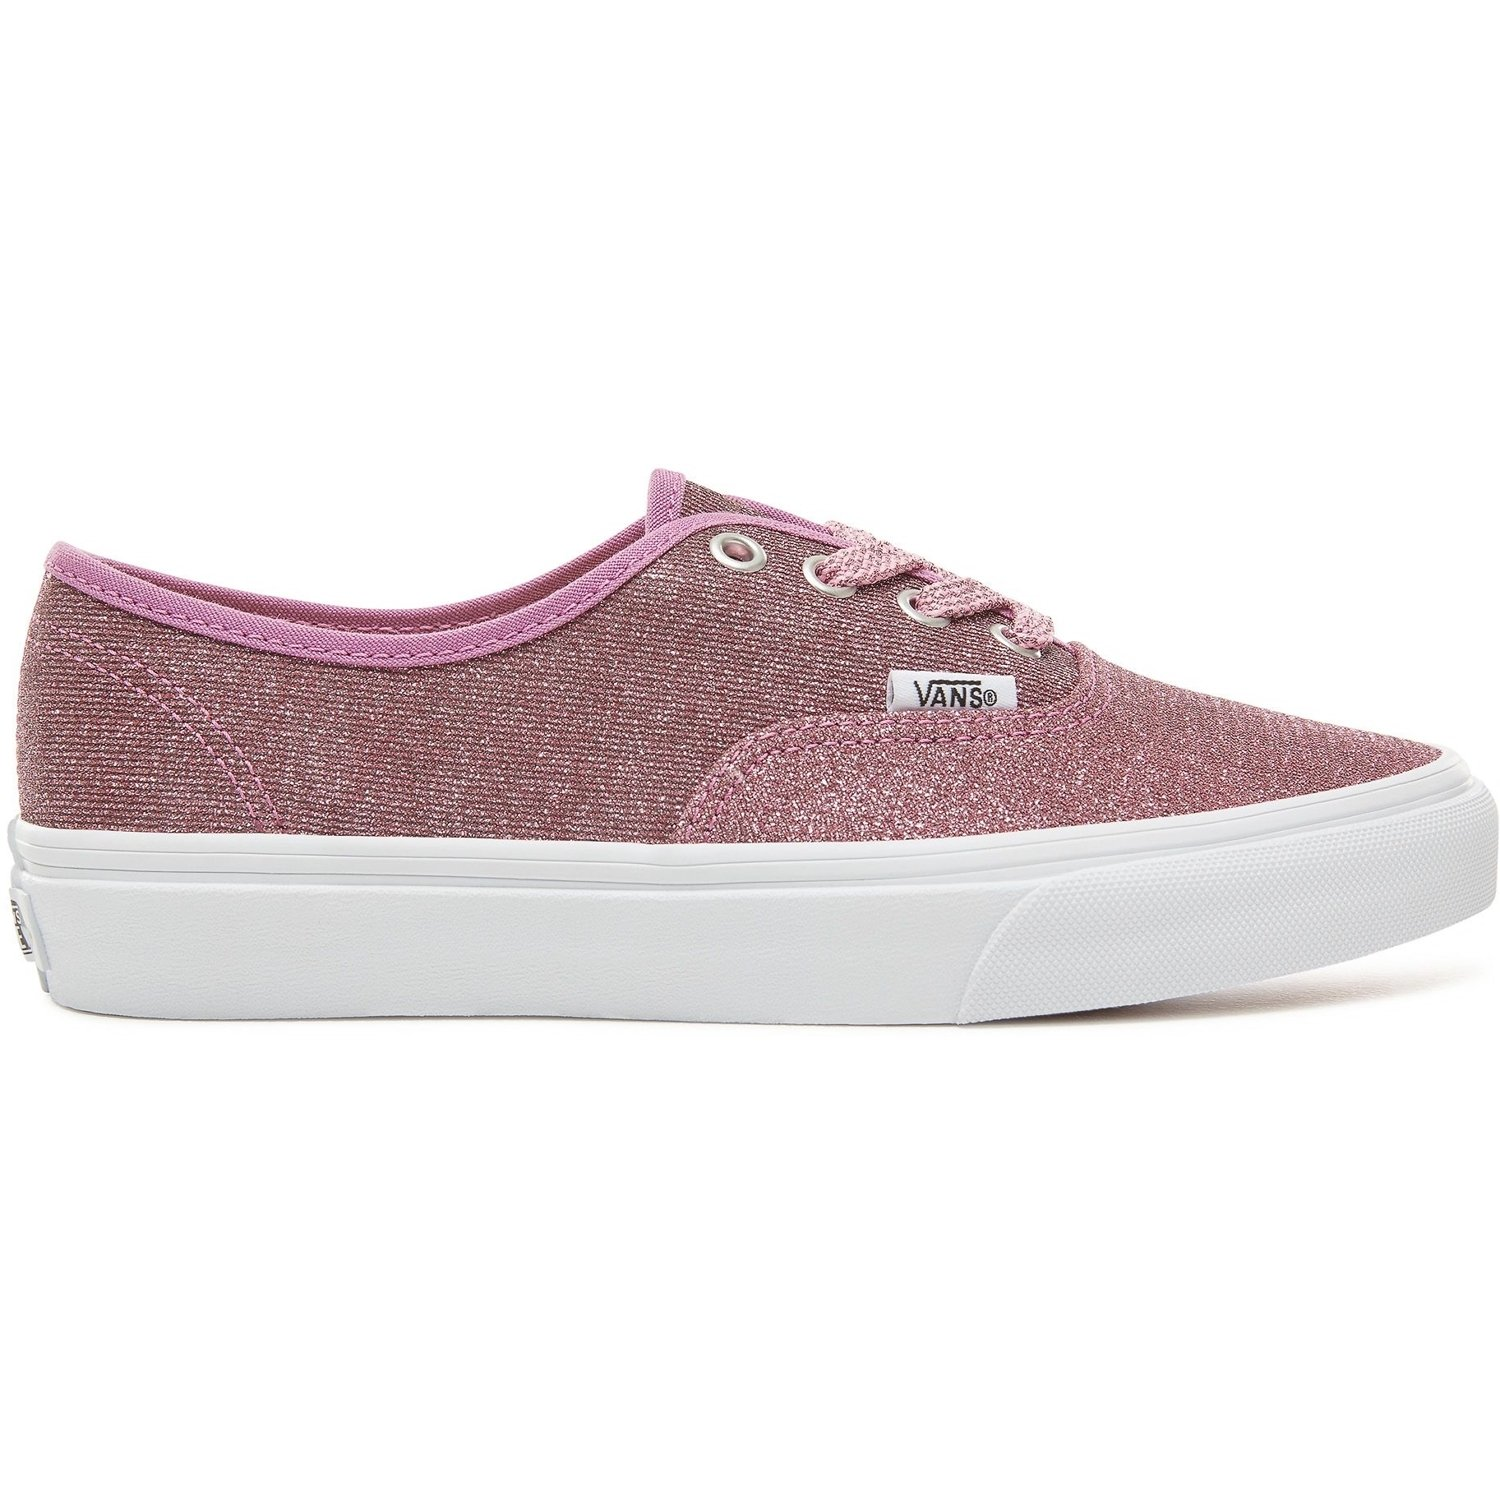 Vans Lurex Glitter Authentic Unisex Womens Skateboarding-Shoes VN-0A38EMU3U_6 - Pink/True White Glitter